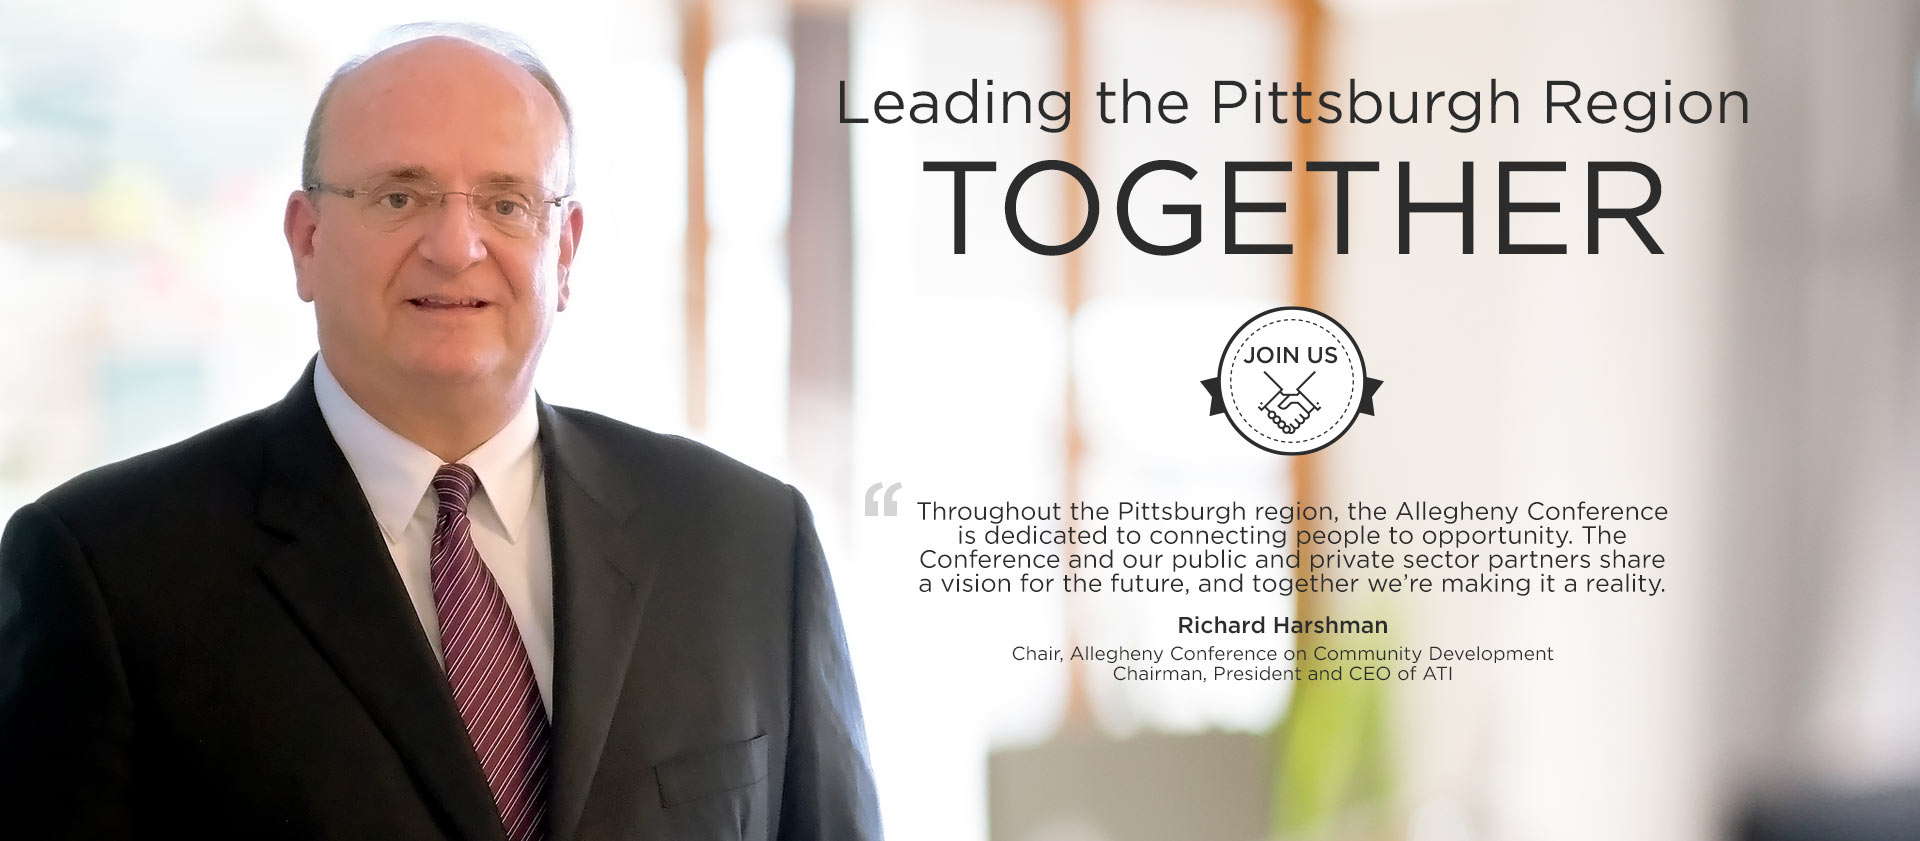 Richard Harshman – Chair, Allegheny Conference – Chairman, President and CEO of ATI